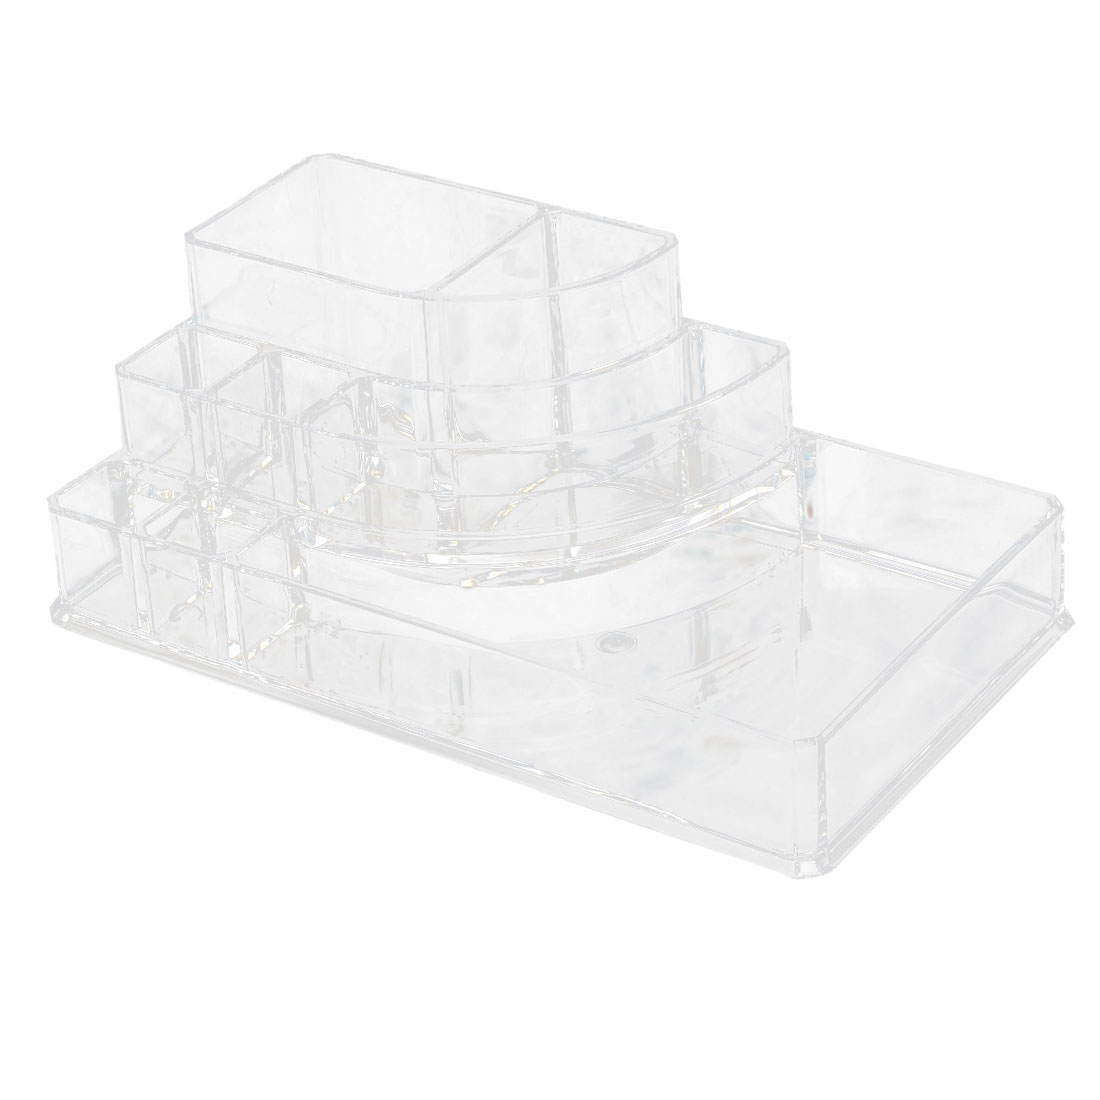 Household Acrylic 8 Slots Jewelry Storage Box Case Cosmetic Organizer Clear